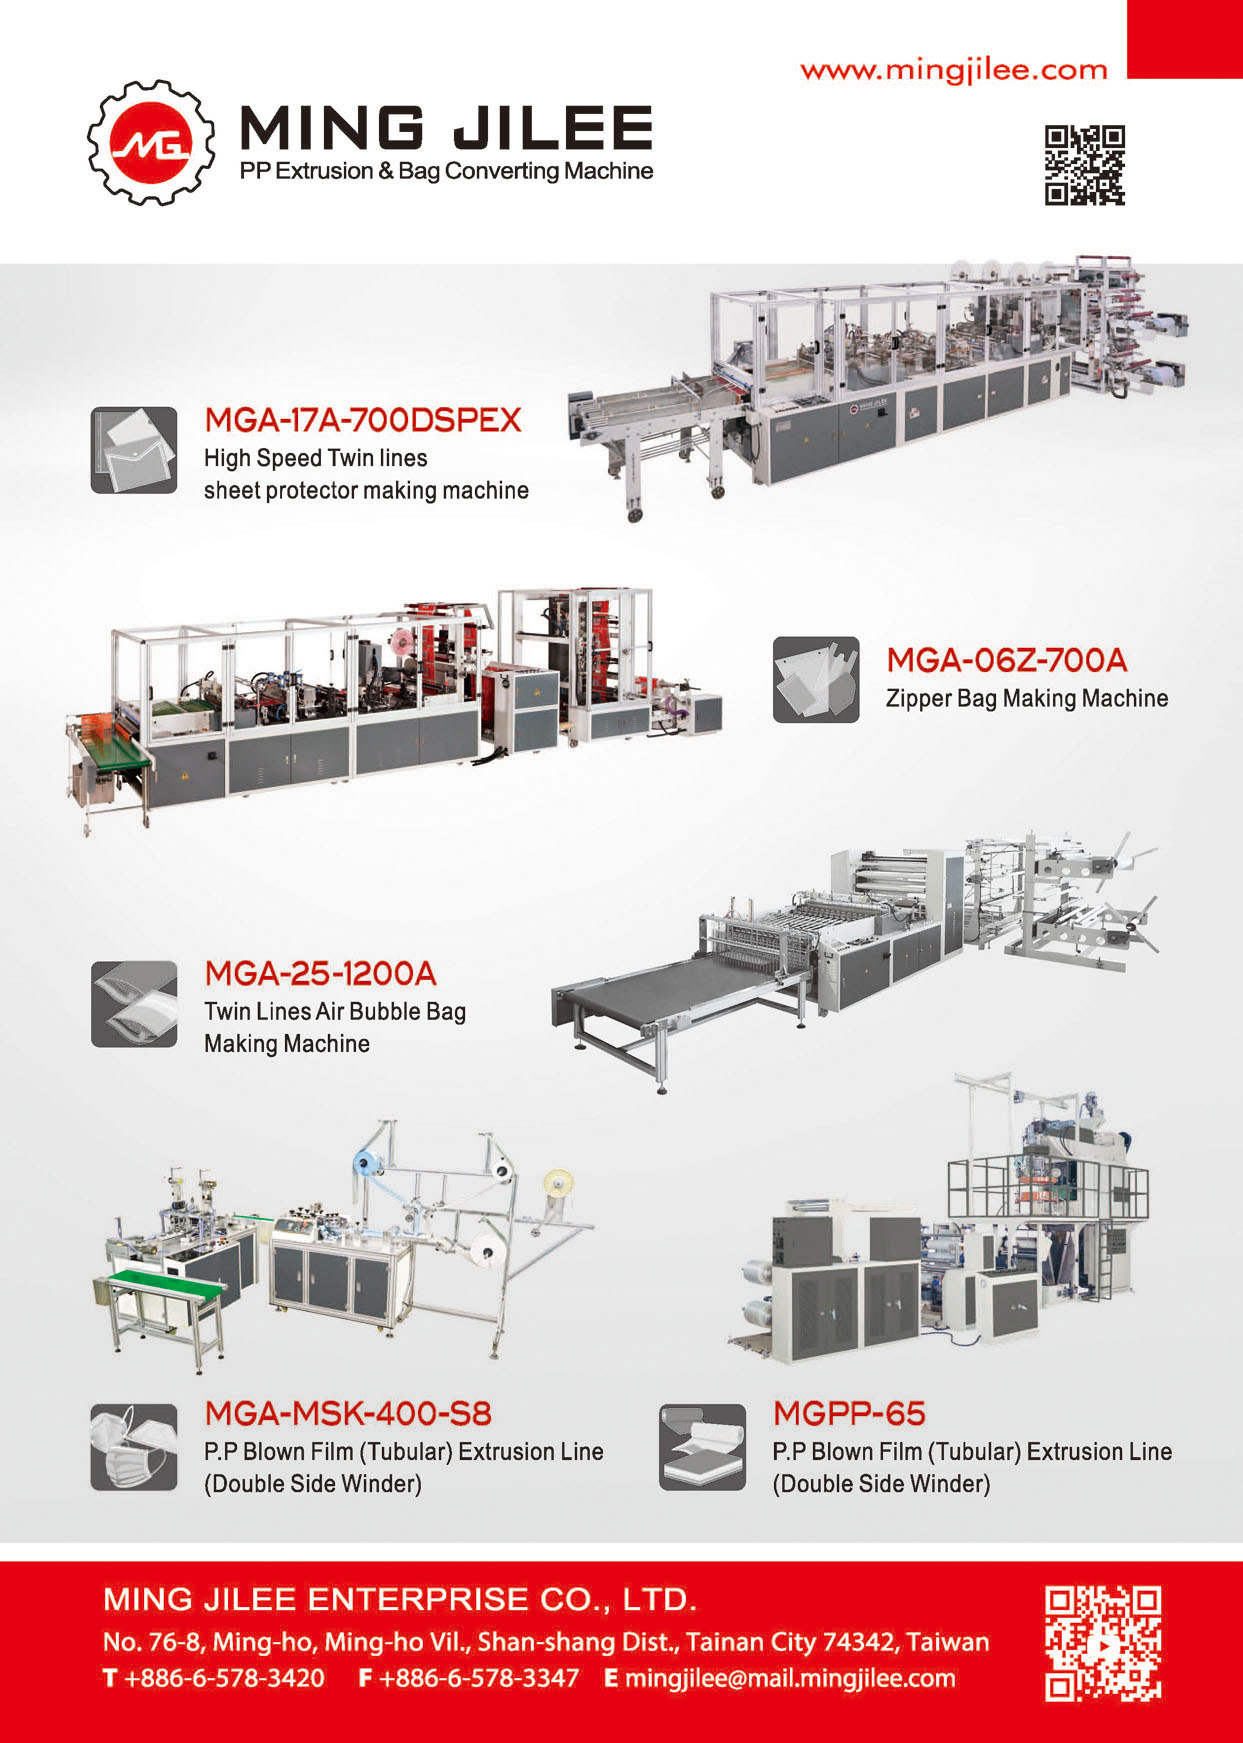 Who Makes Machinery in Taiwan MING JILEE ENTERPRISE CO., LTD.